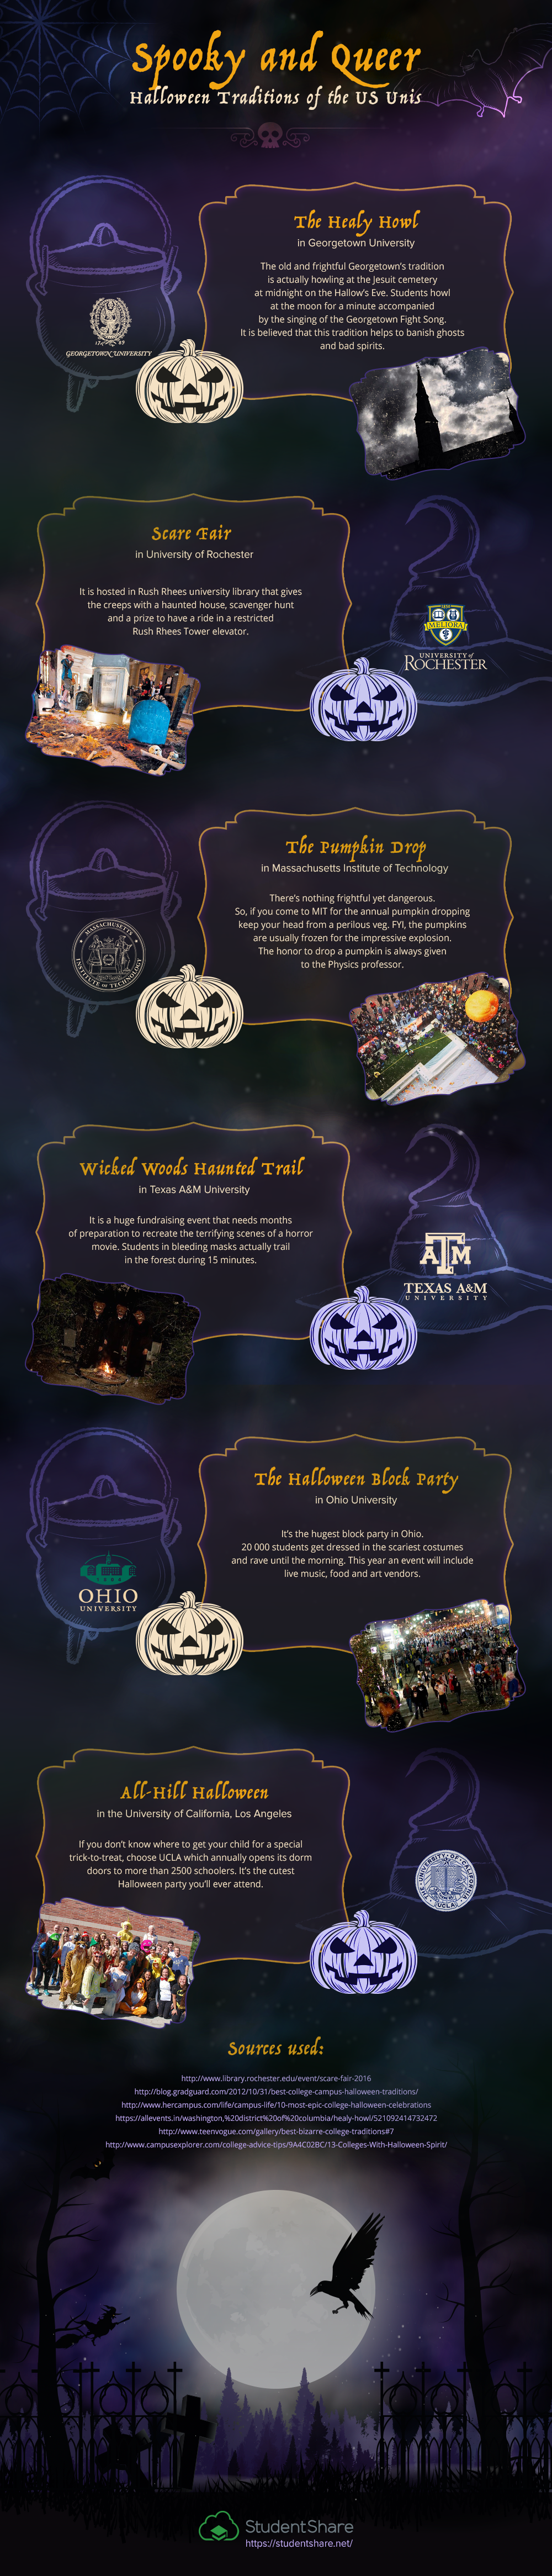 Spooky and Queer Halloween Traditions of the US Unis [Infographic]